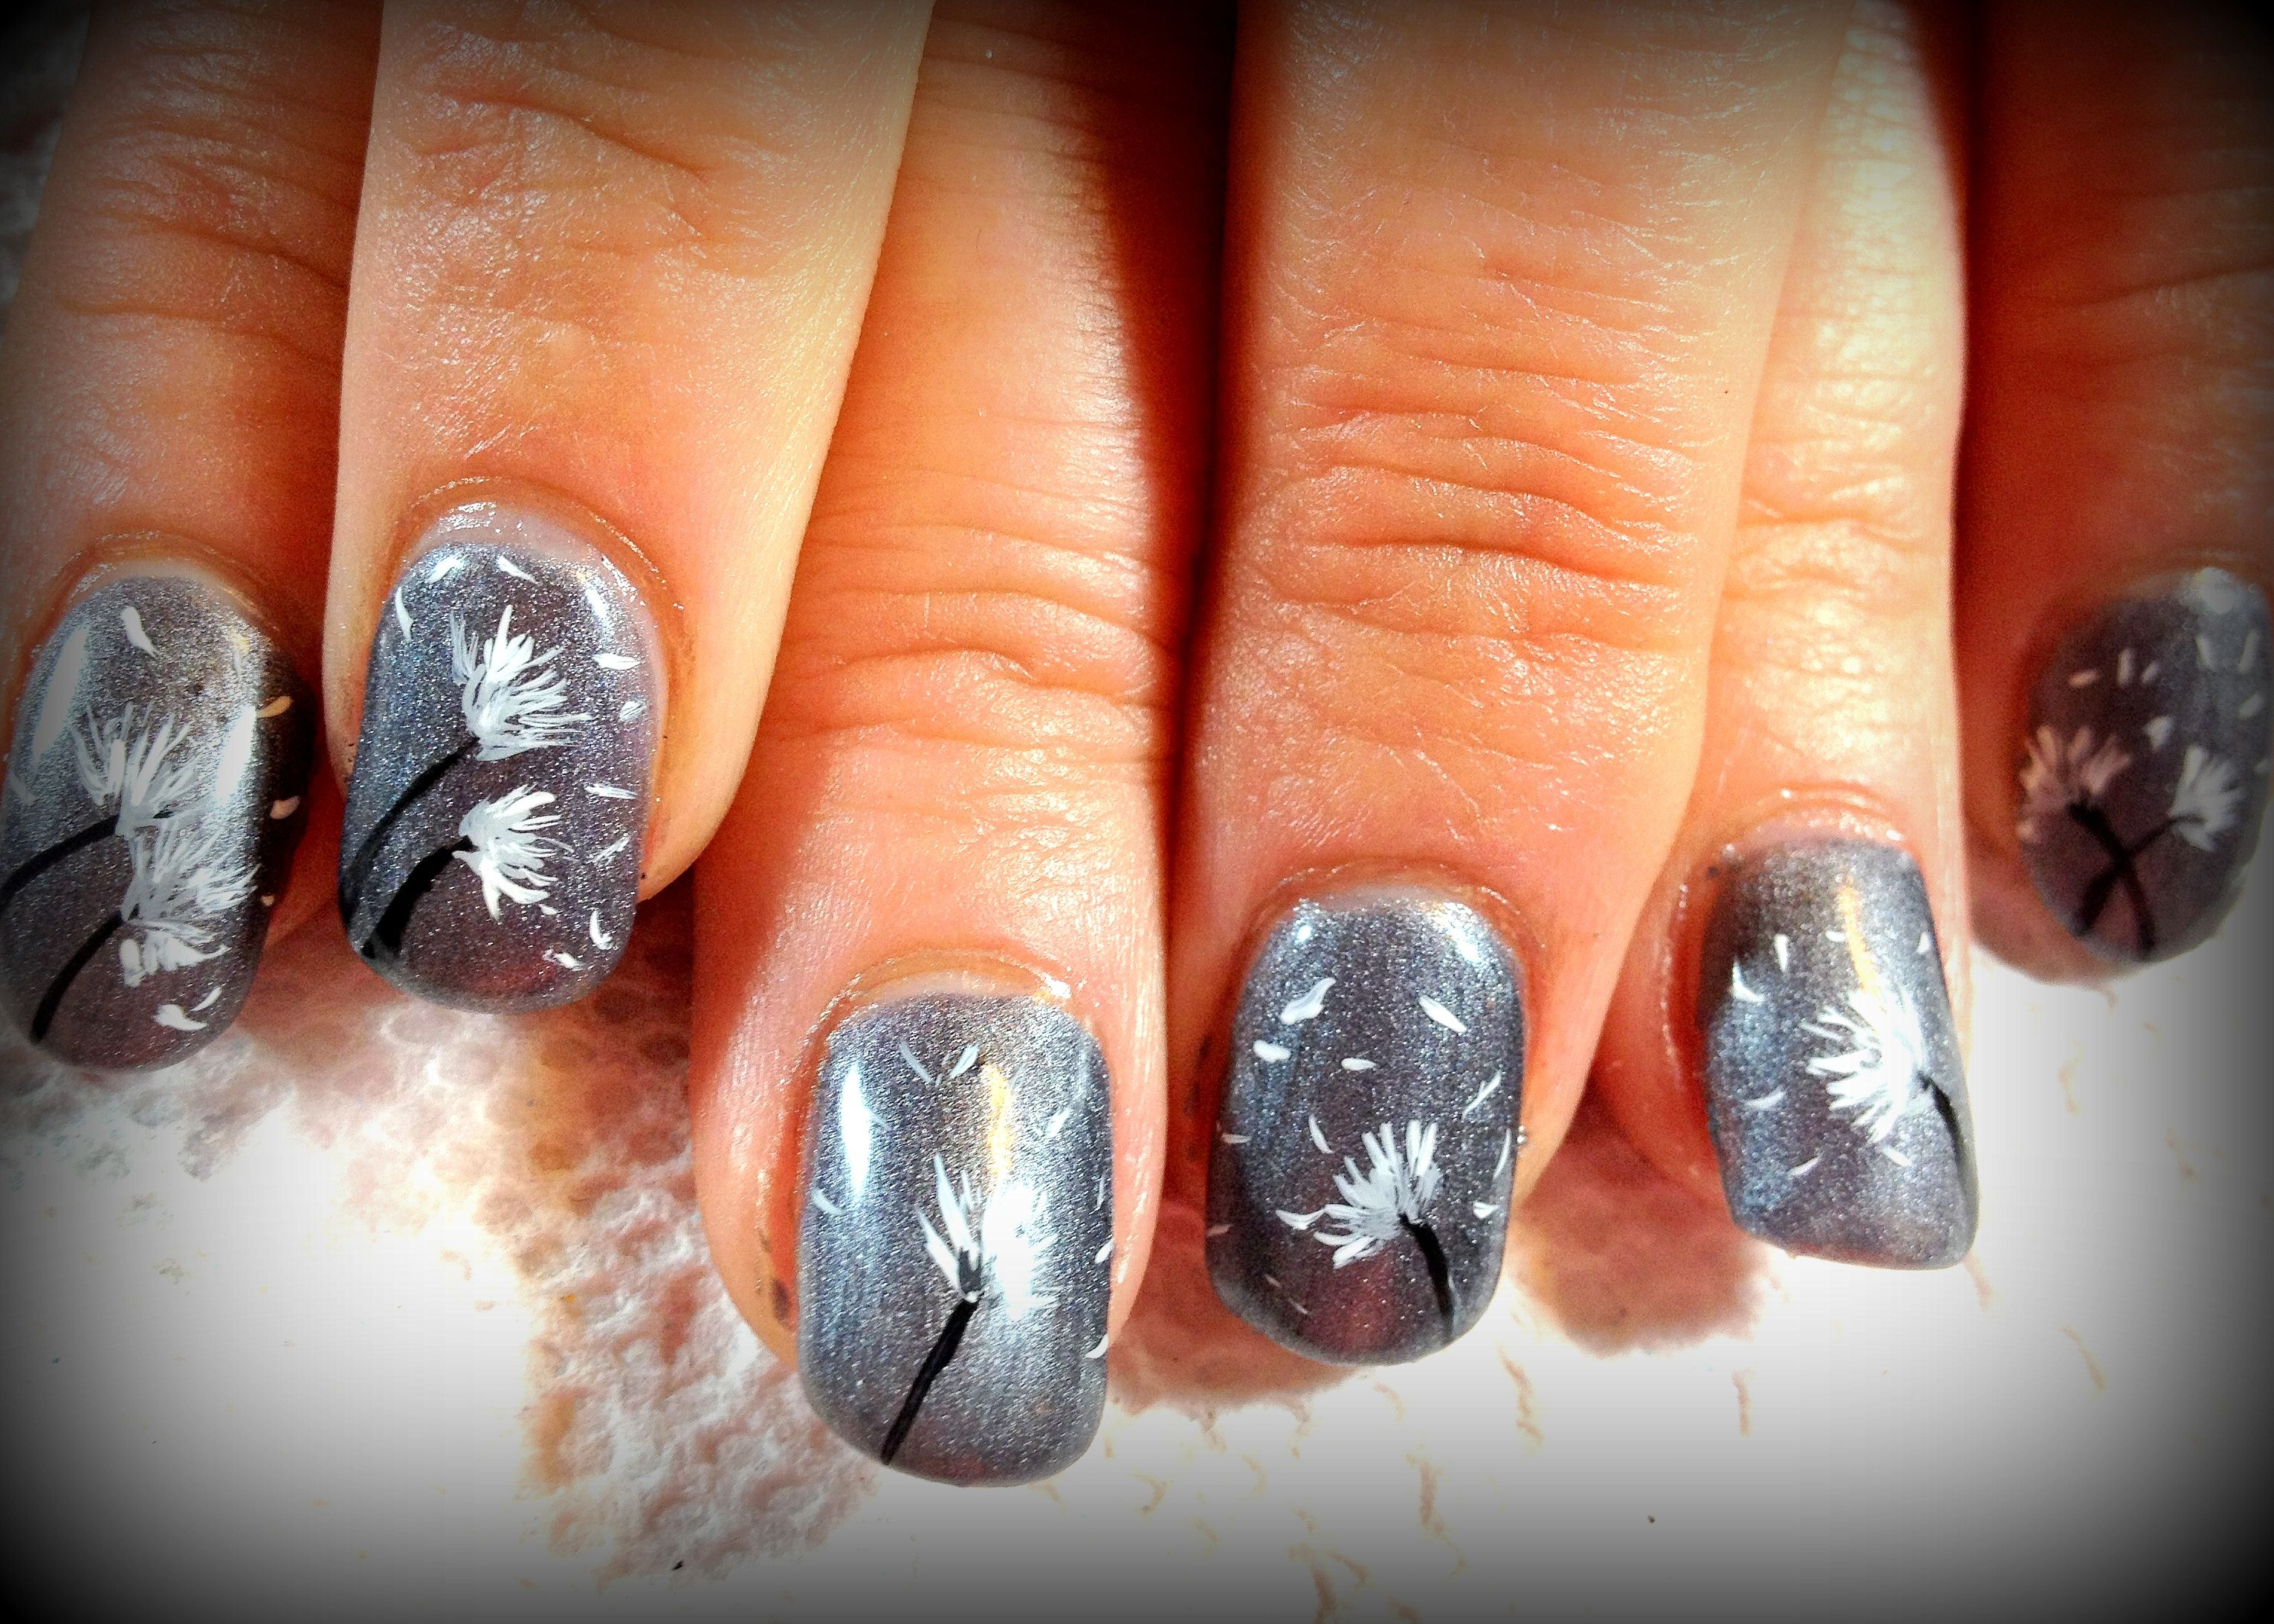 My Dandelion blowing puffs manicure LOVE them ... done by Nailz Ink